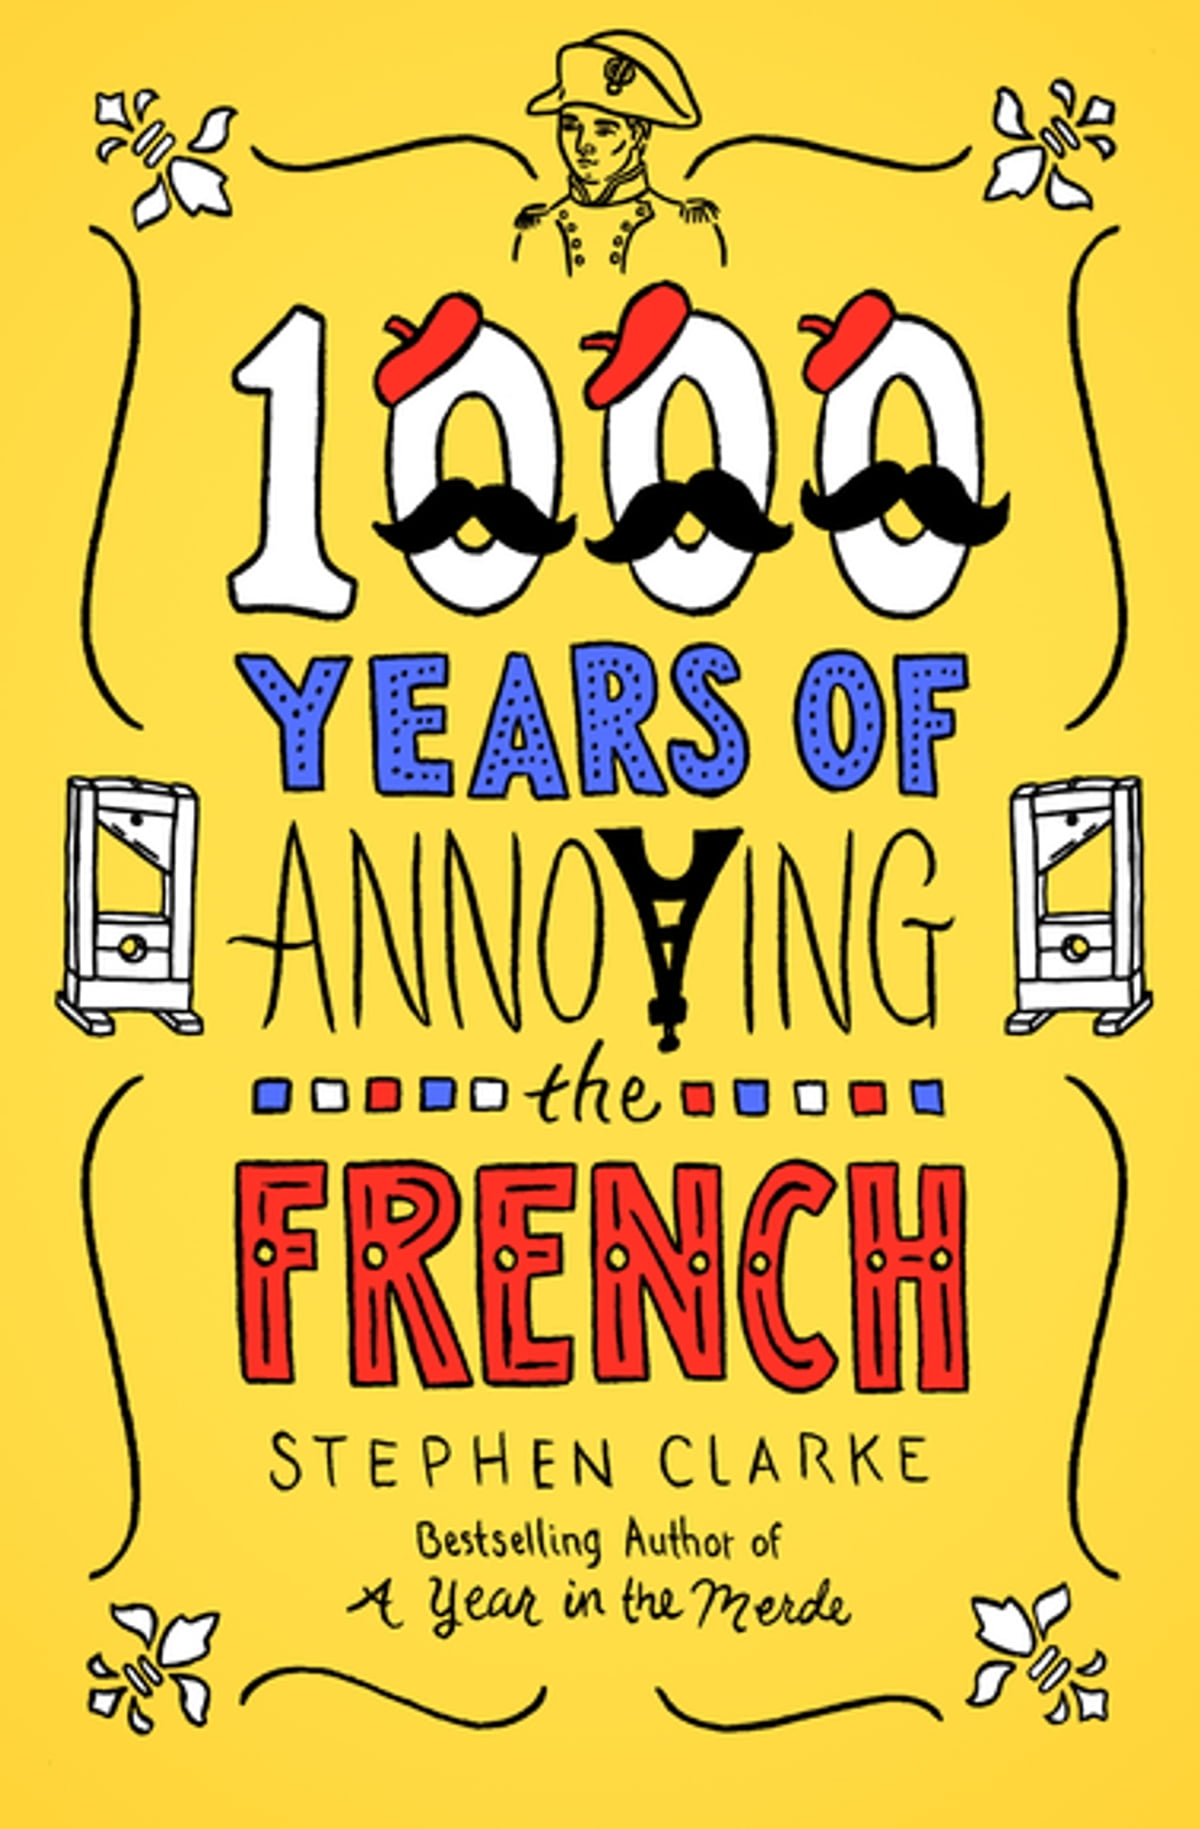 1000 Years of Annoying the French eBook by Stephen Clarke - 9781453243589 |  Rakuten Kobo